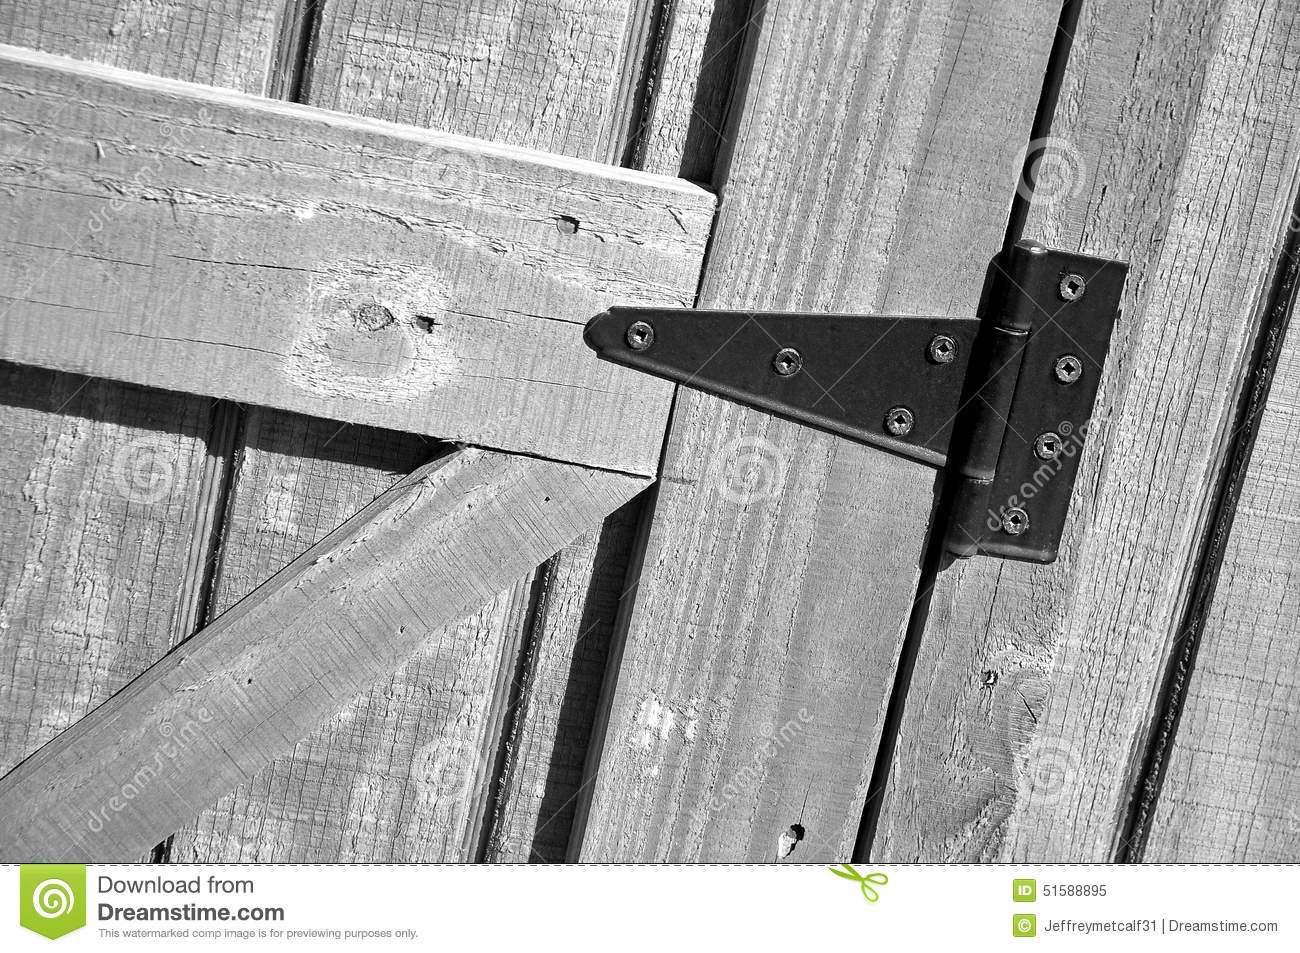 hinge barn doors hardware the hinges barns wilcox architectural richards coast is door rw east